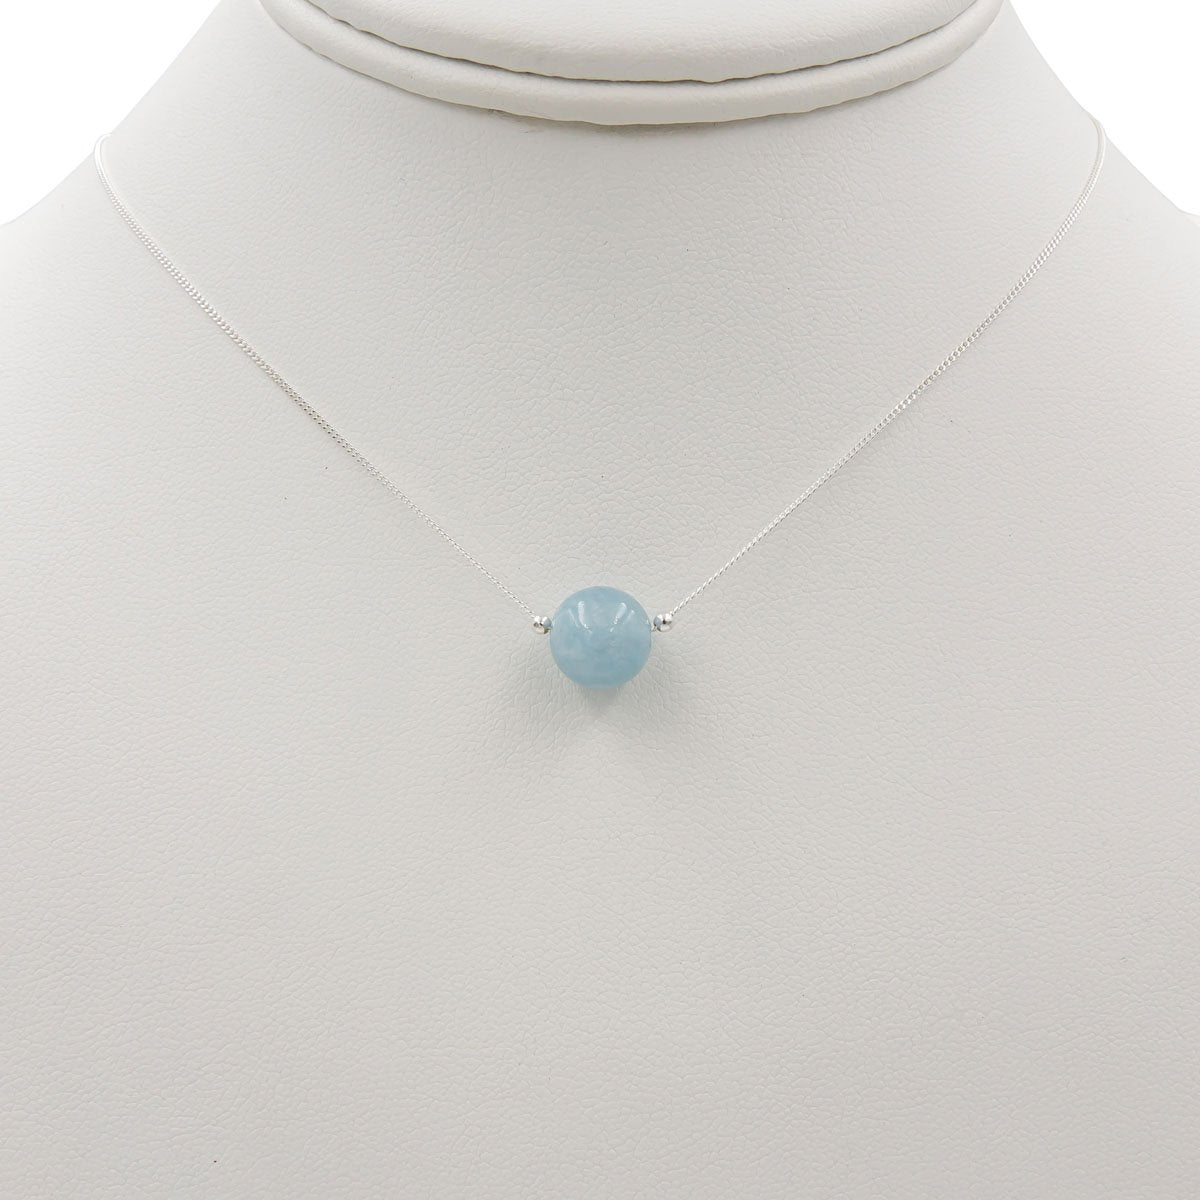 Handmade Sterling Silver Aquamarine Solitaire Necklace